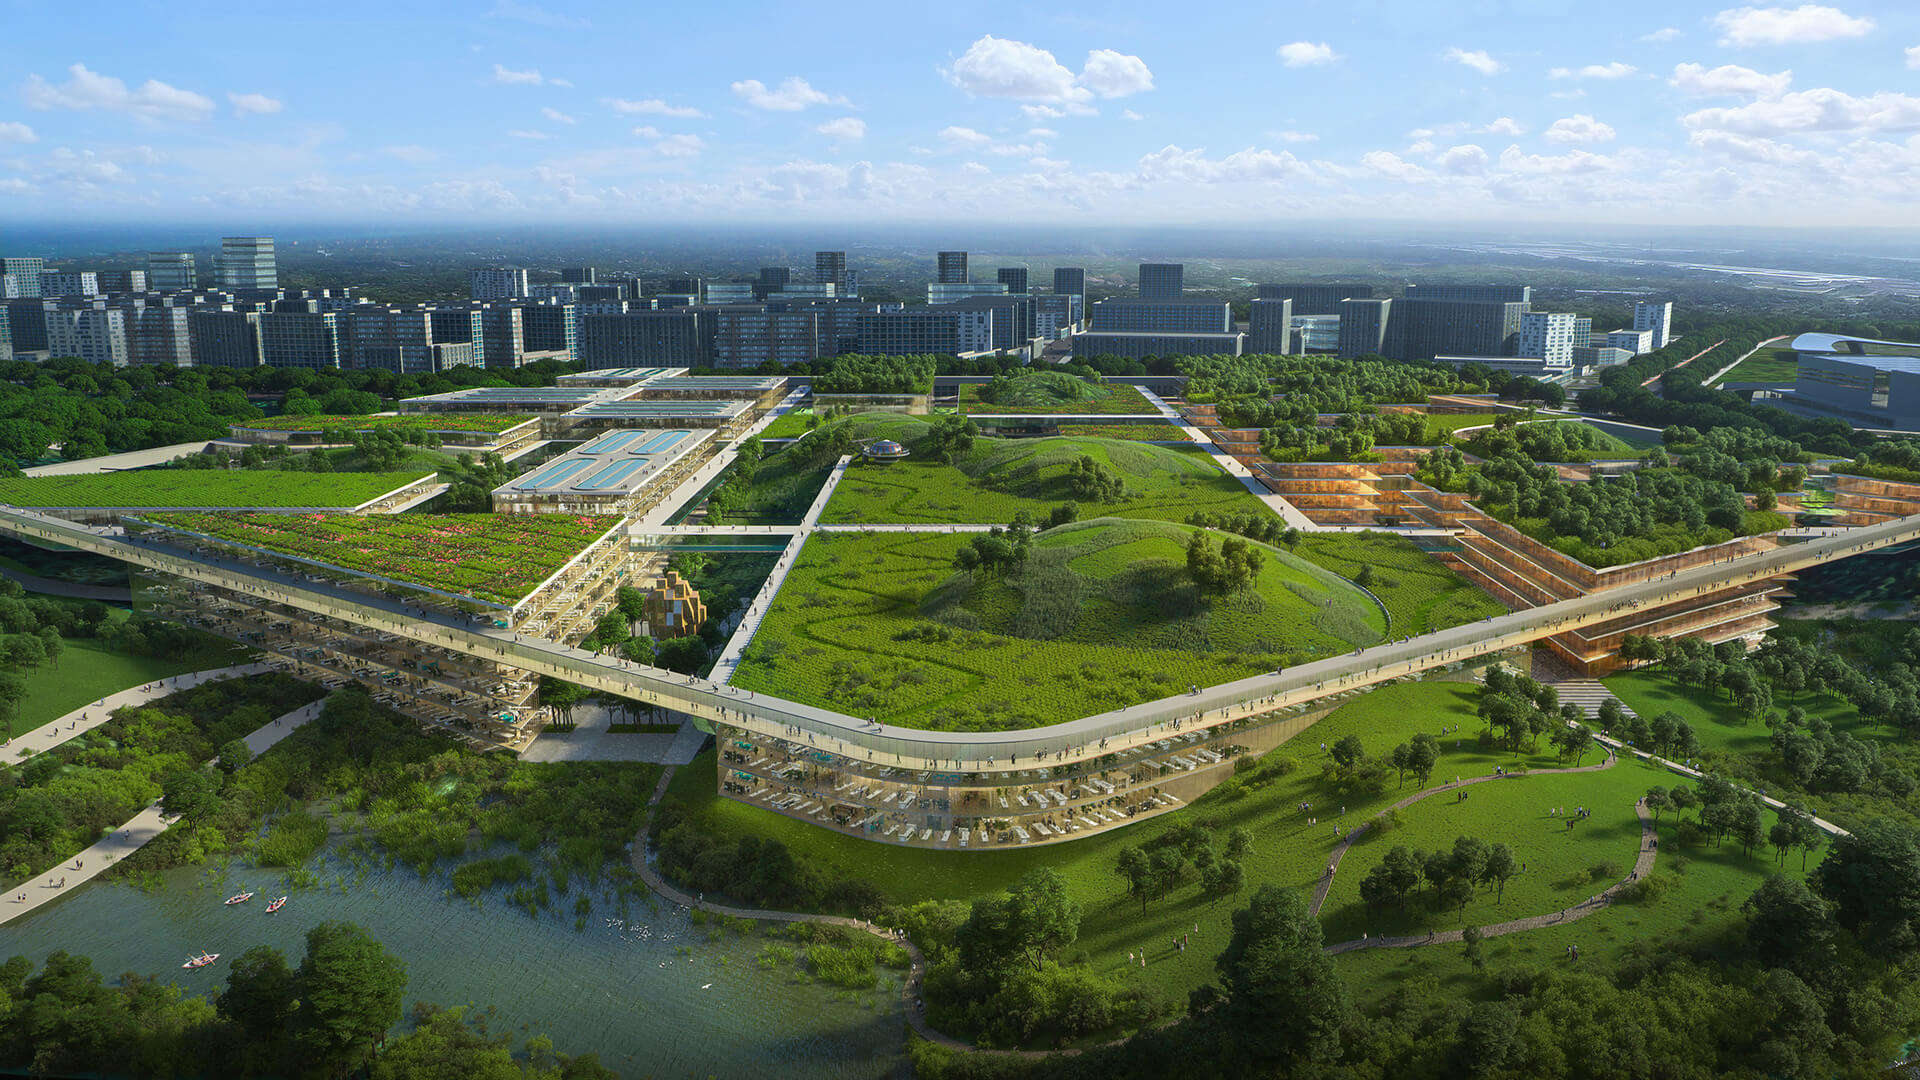 The masterplan includes an International Education Park and Transit Oriented Development | Chengdu Future City Masterplan | OMA | STIRworld